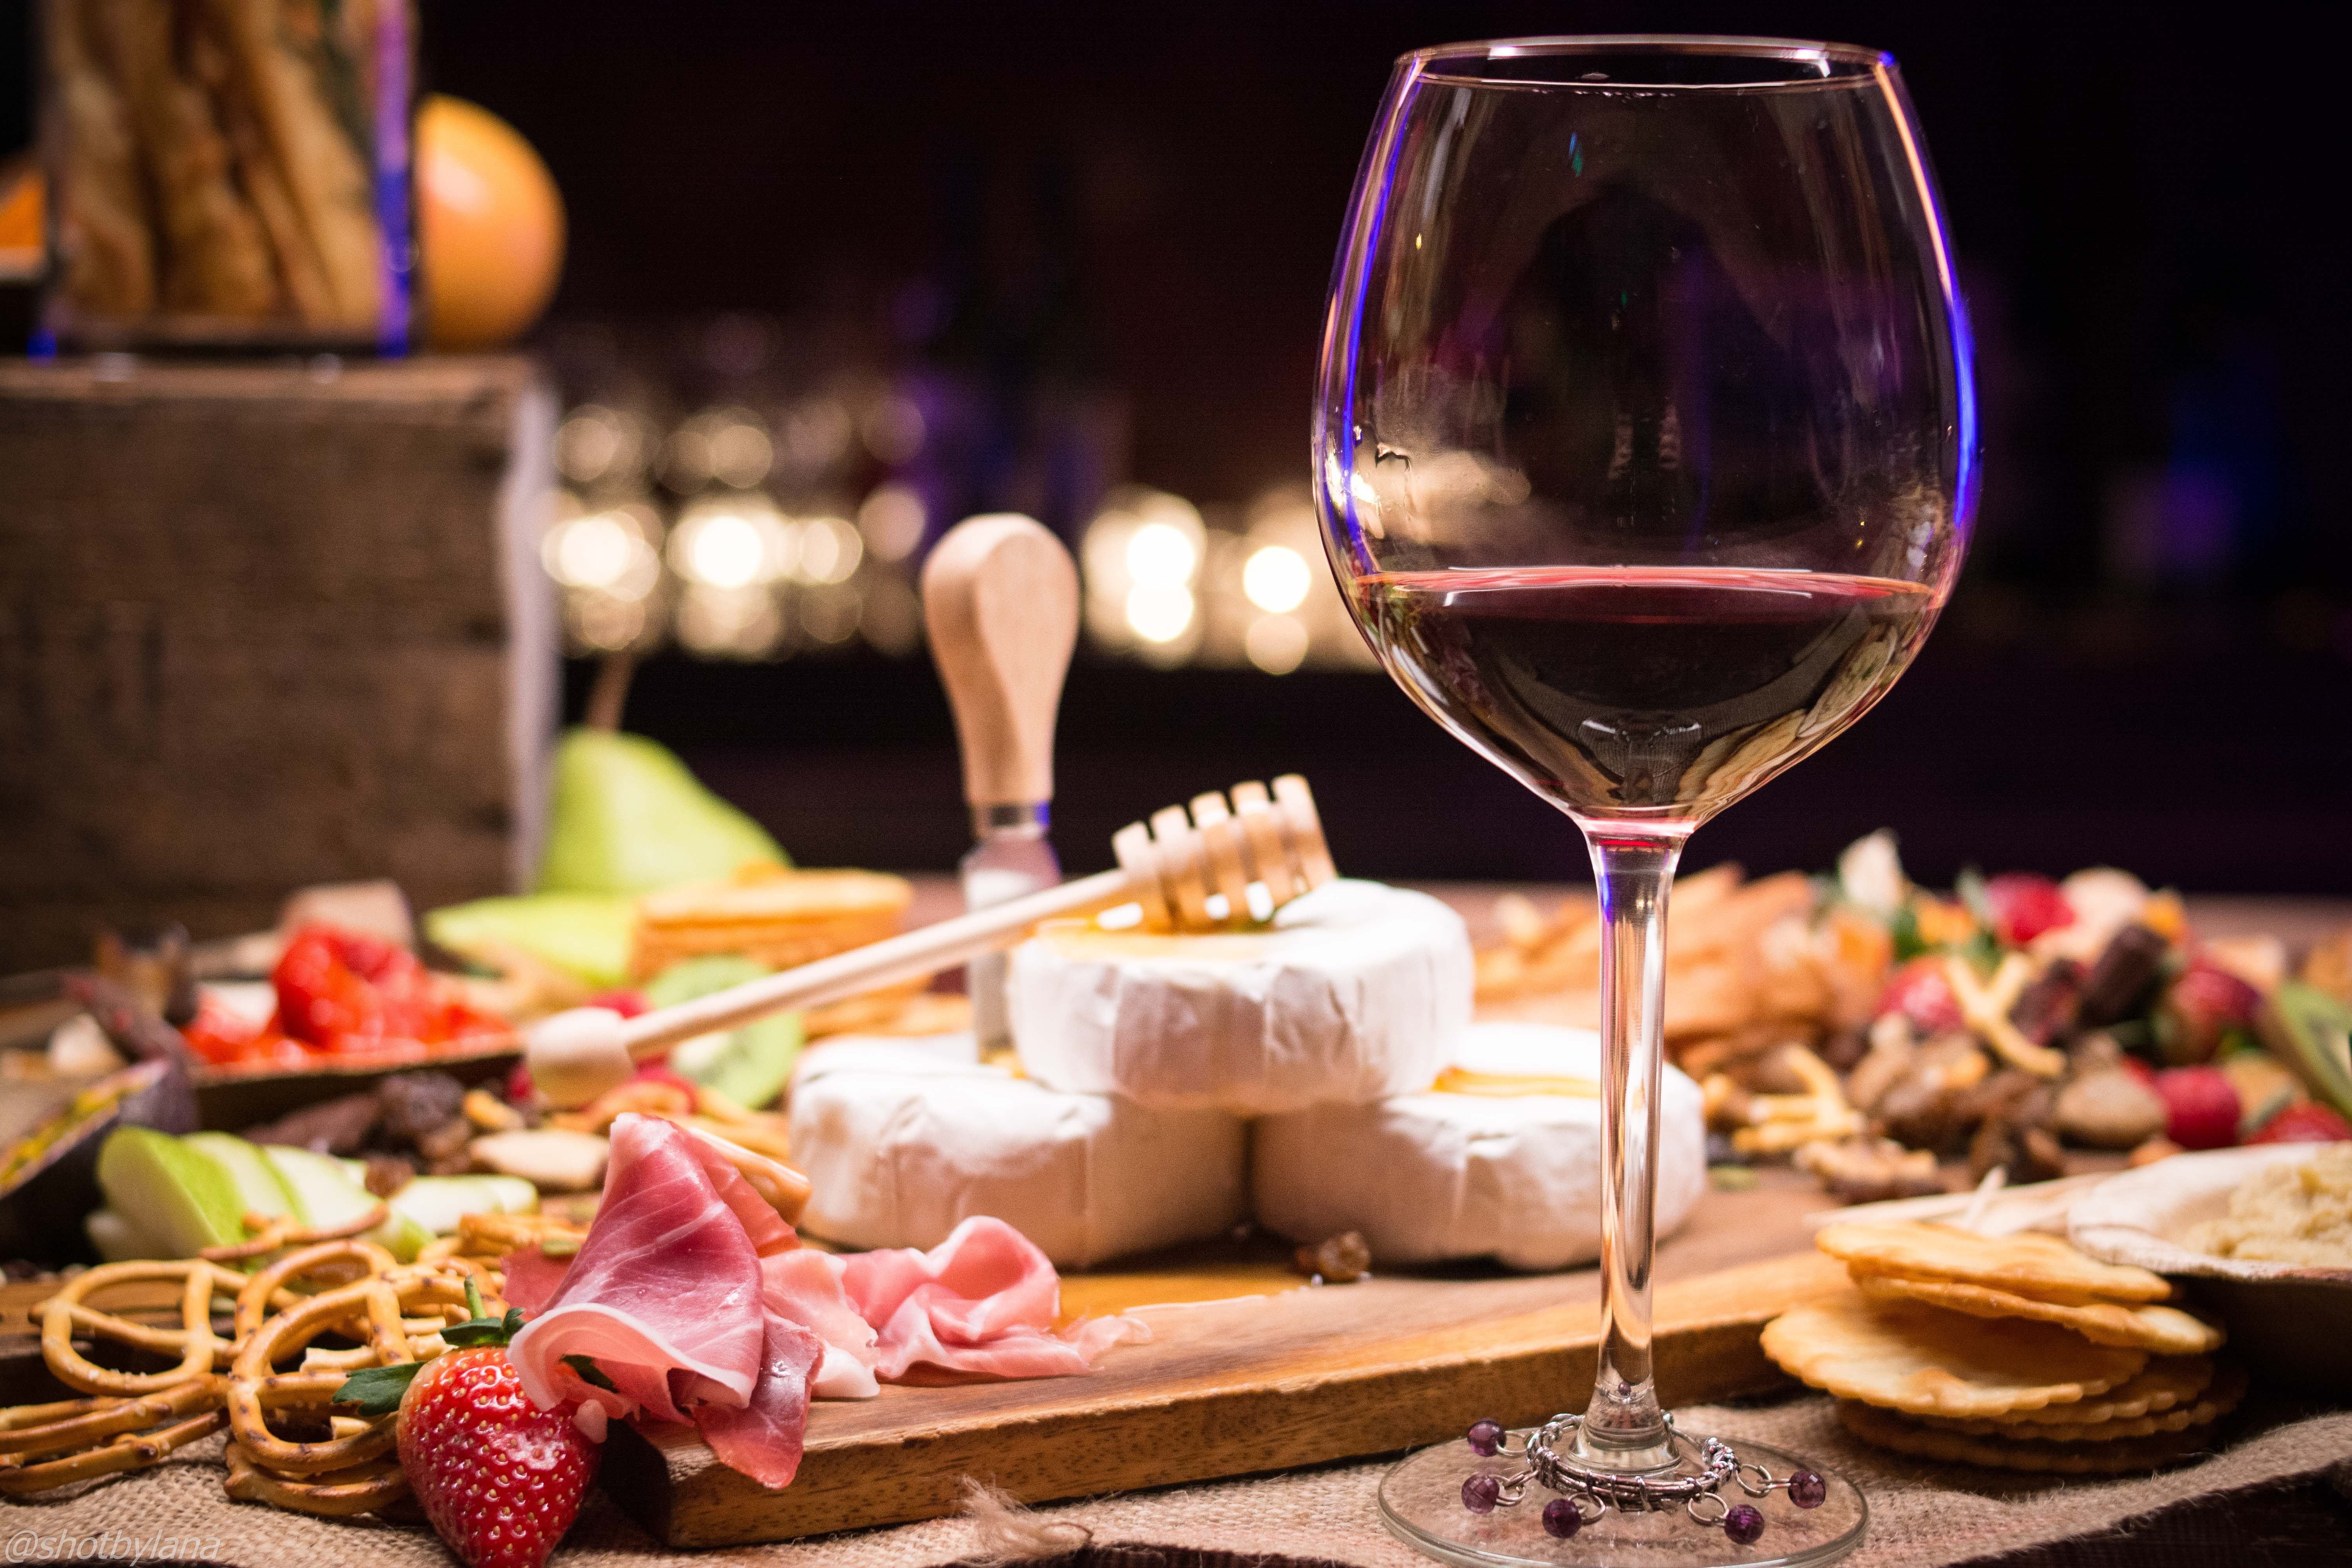 Charcuterie Board with a Glass of Red Wine